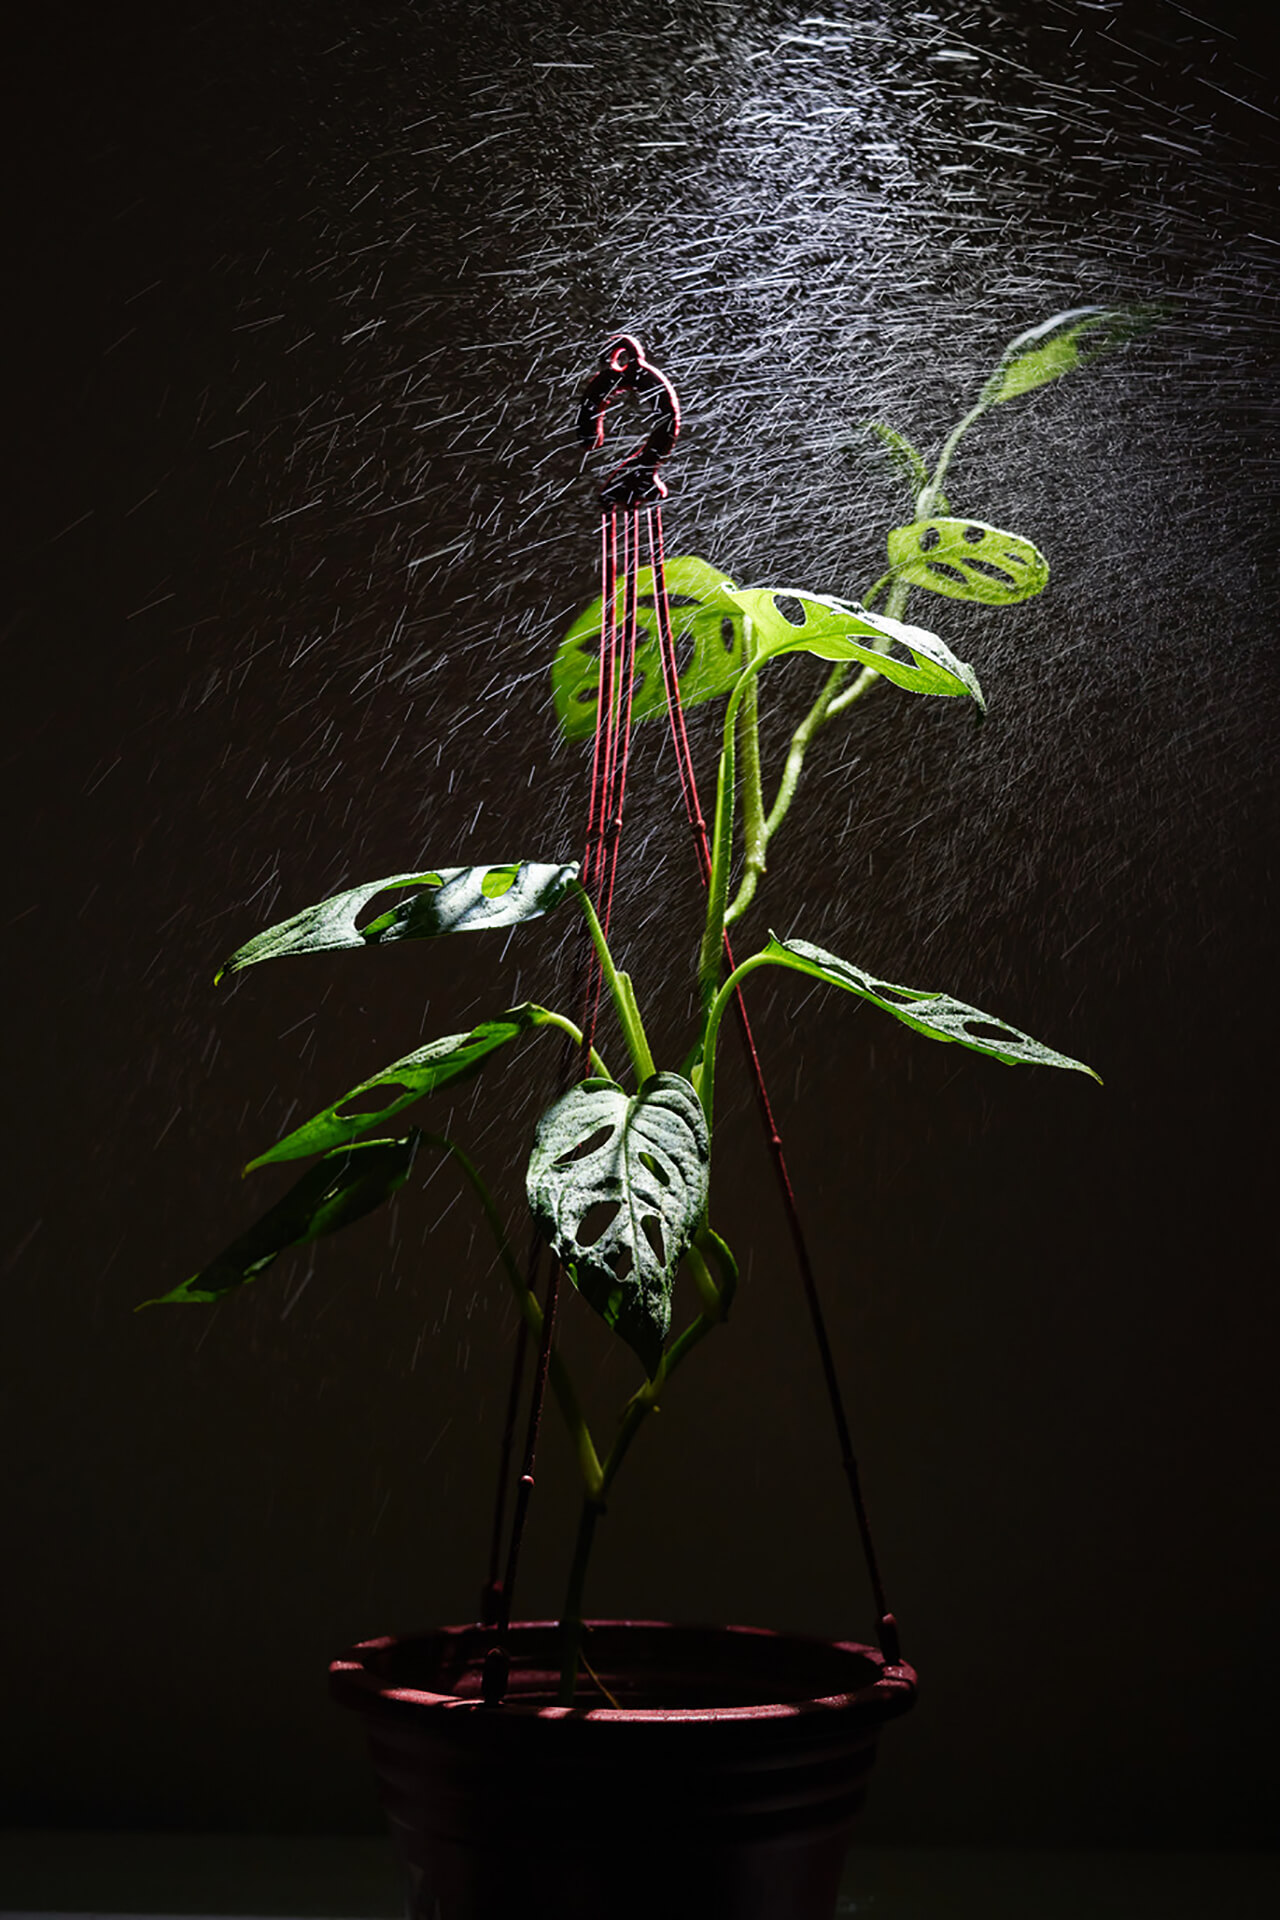 Backlit shot of water sprinkling over a hanging plant with holes in its leaves.